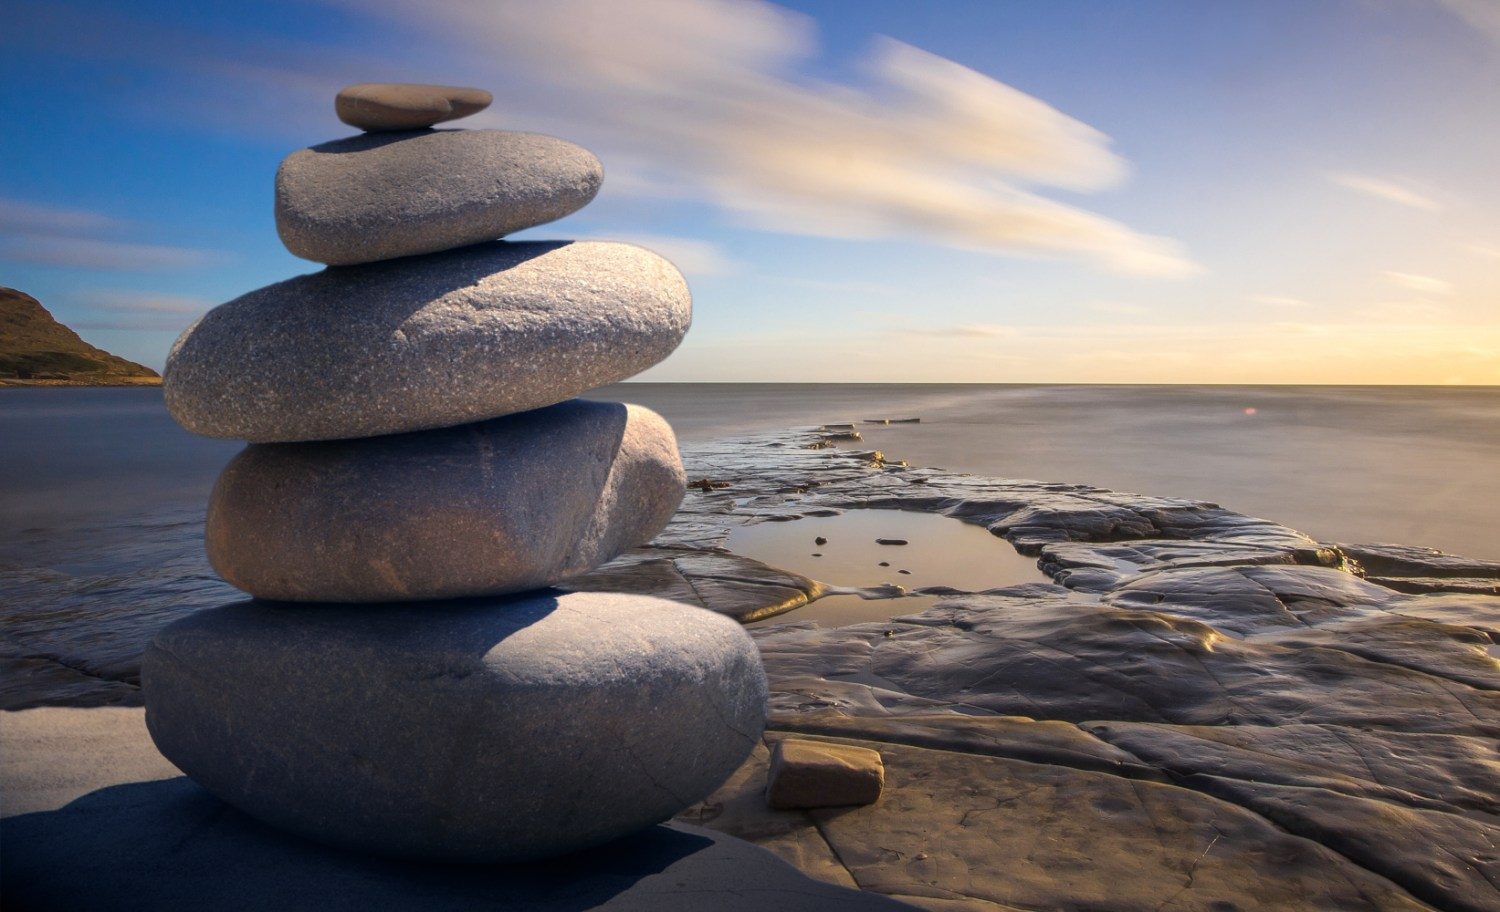 1000 Amazing Zen Stones Photos Pexels Free Stock Photos